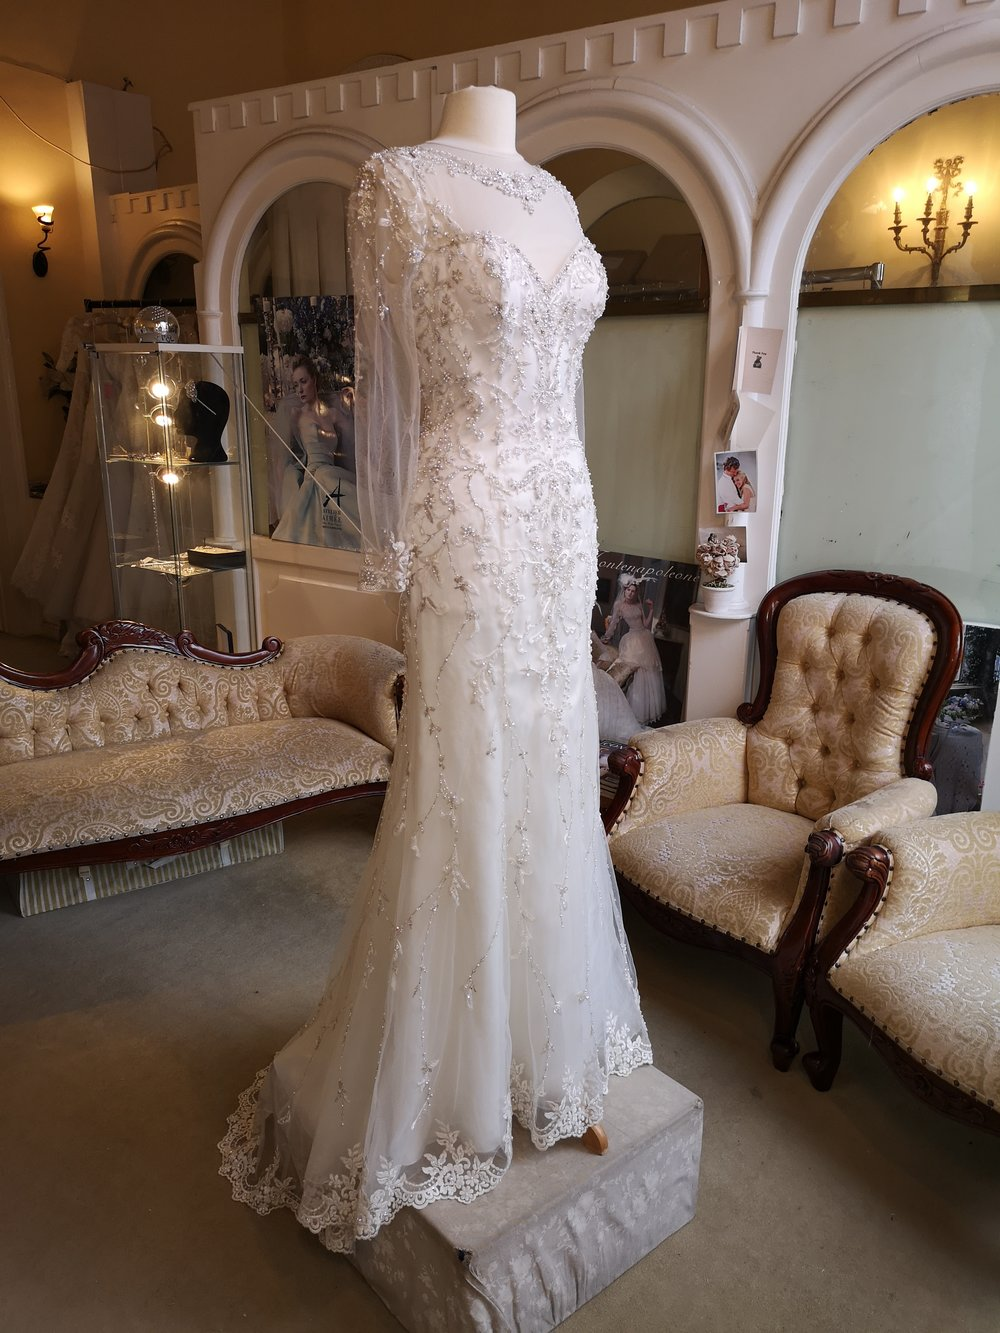 Kenneth Winston Cotoure Embelished Dress  Colour: Ivory with embelishment  Size : 12  Was €2,700 now €1500  Ref: E104